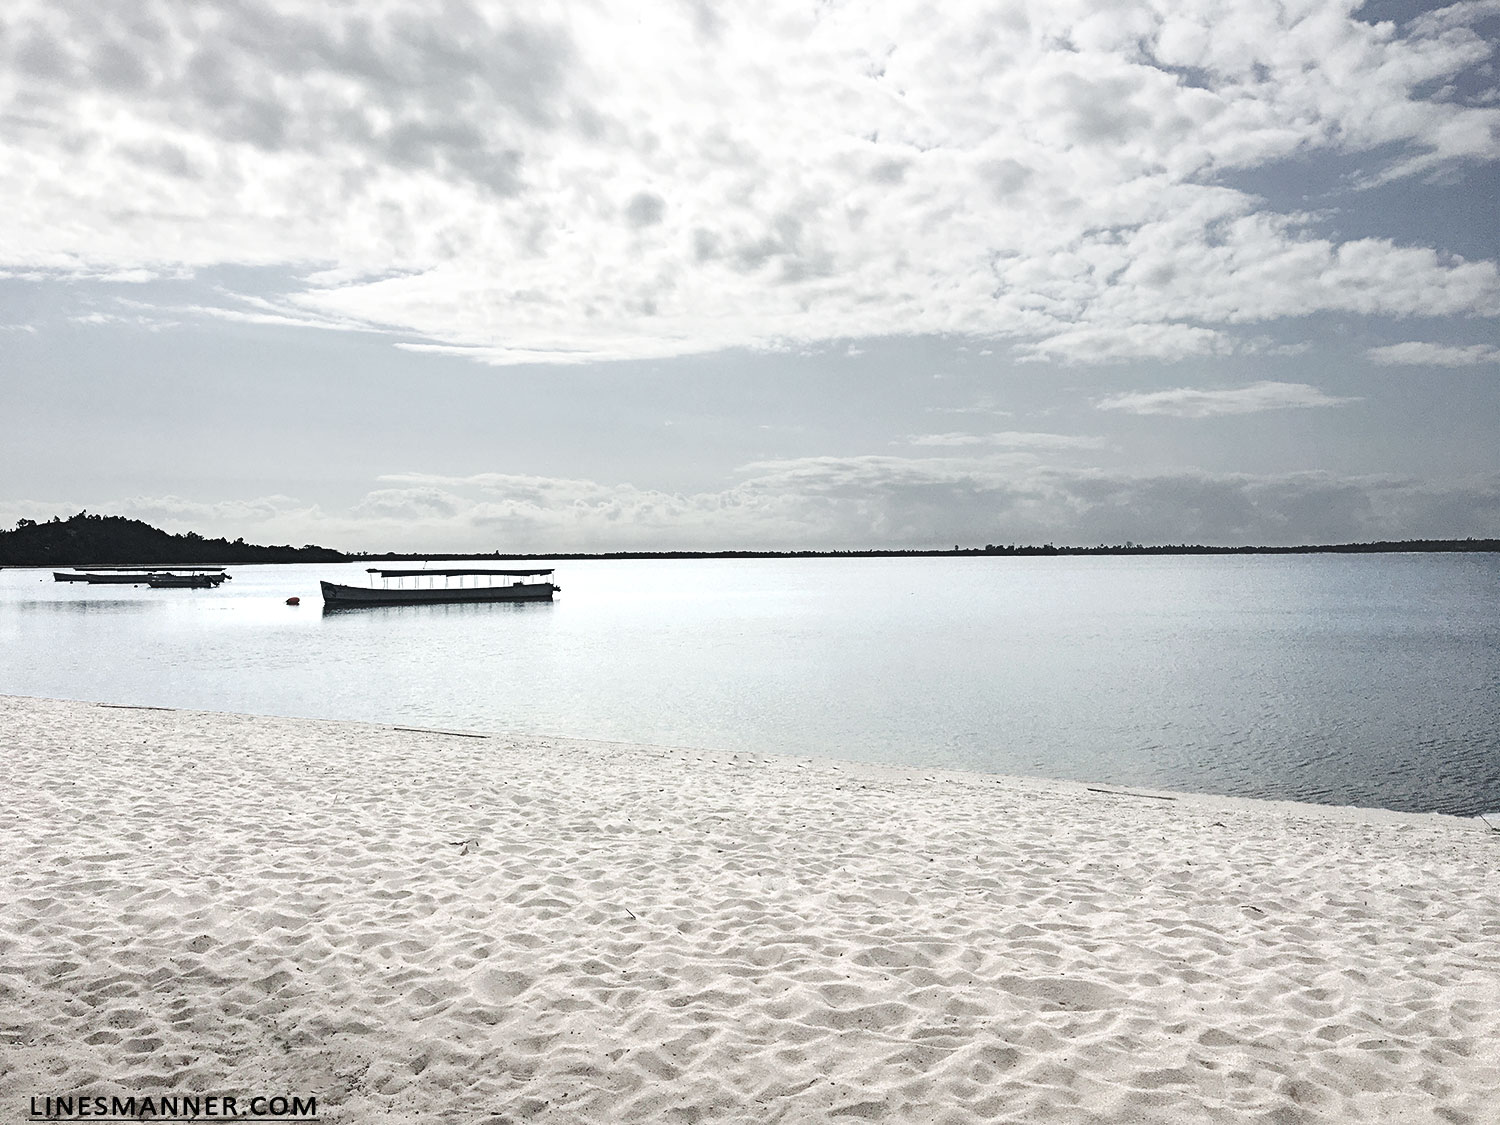 Lines-Manner-Explore-Travel-World-Places-Ocean-Madagascar-Island-Photography-Inspiration-Sea-Tropical-3